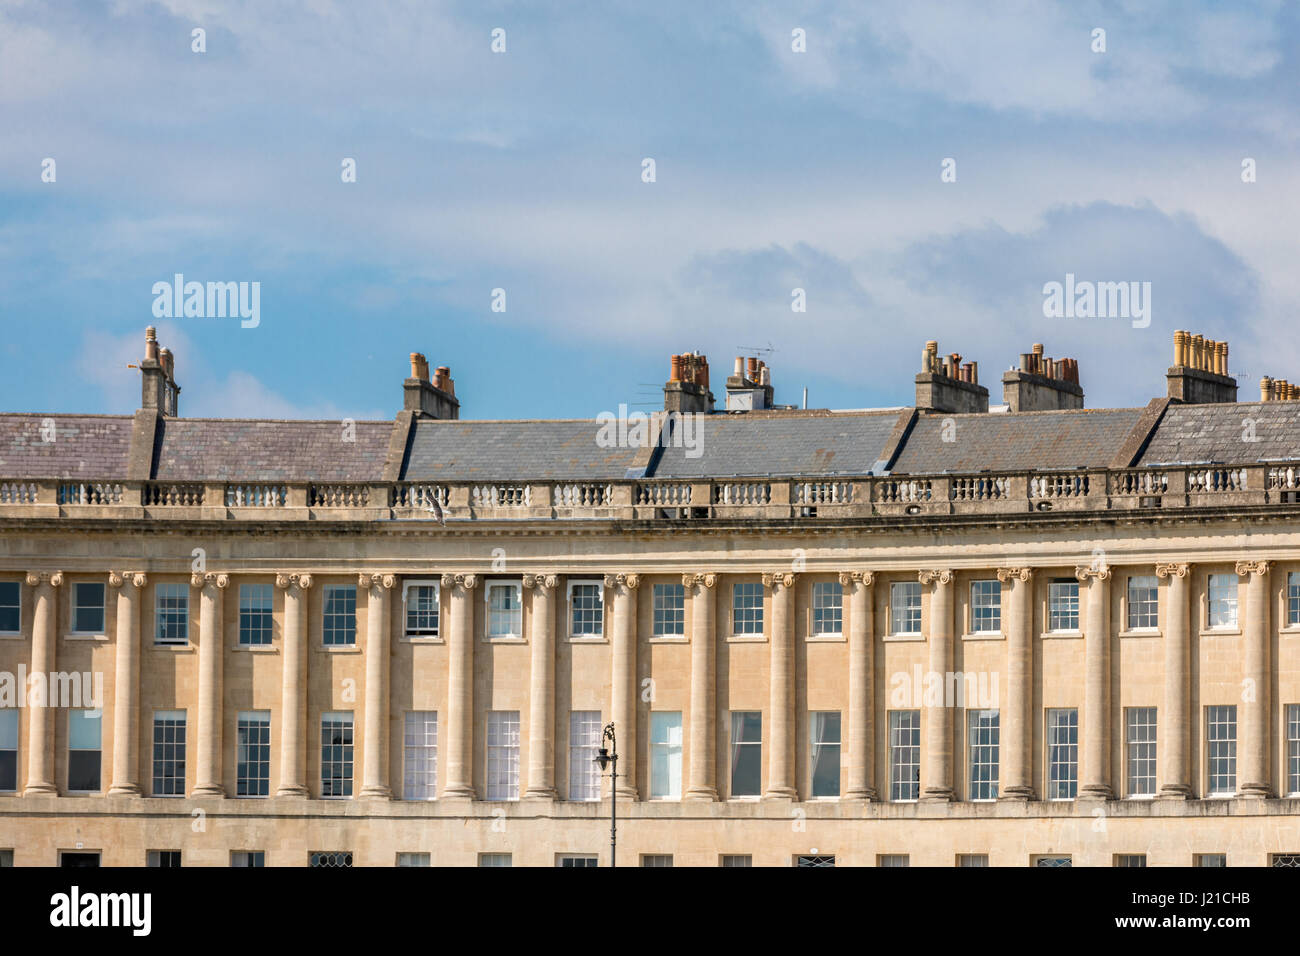 a detailed image of the royal Cresent in the city of Bath England, UK - Stock Image